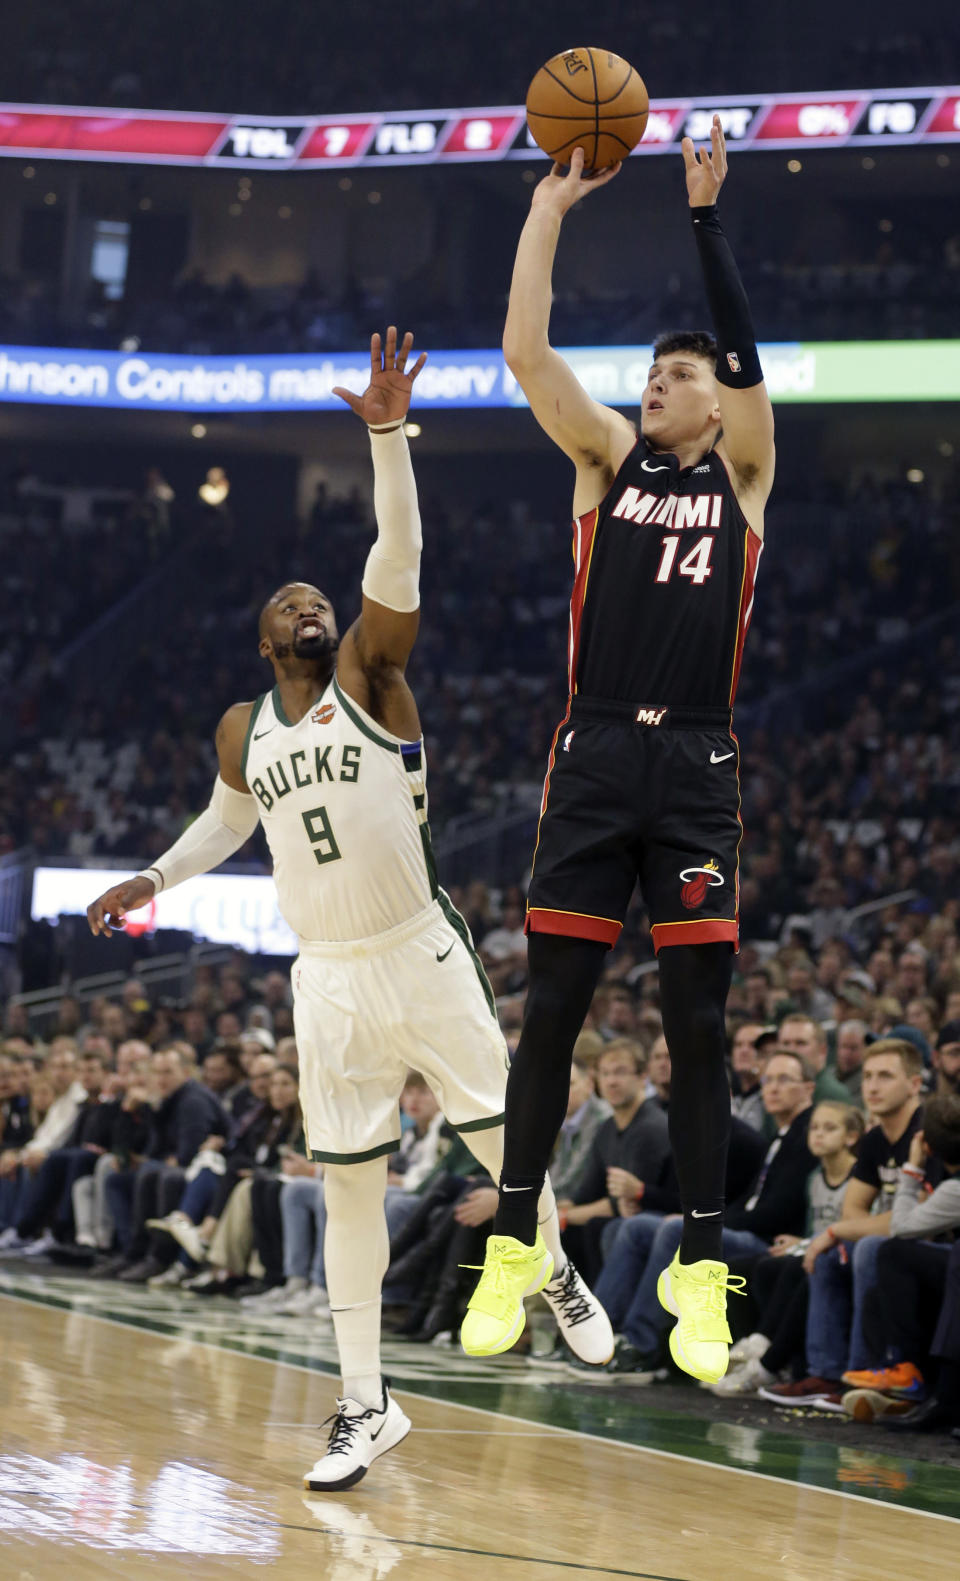 Miami Heat's Tyler Herro (14) puts up a shot against the Milwaukee Bucks' Wesley Matthews (9) during the first half of an NBA basketball game Saturday, Oct. 26, 2019, in Milwaukee. (AP Photo/Jeffrey Phelps)